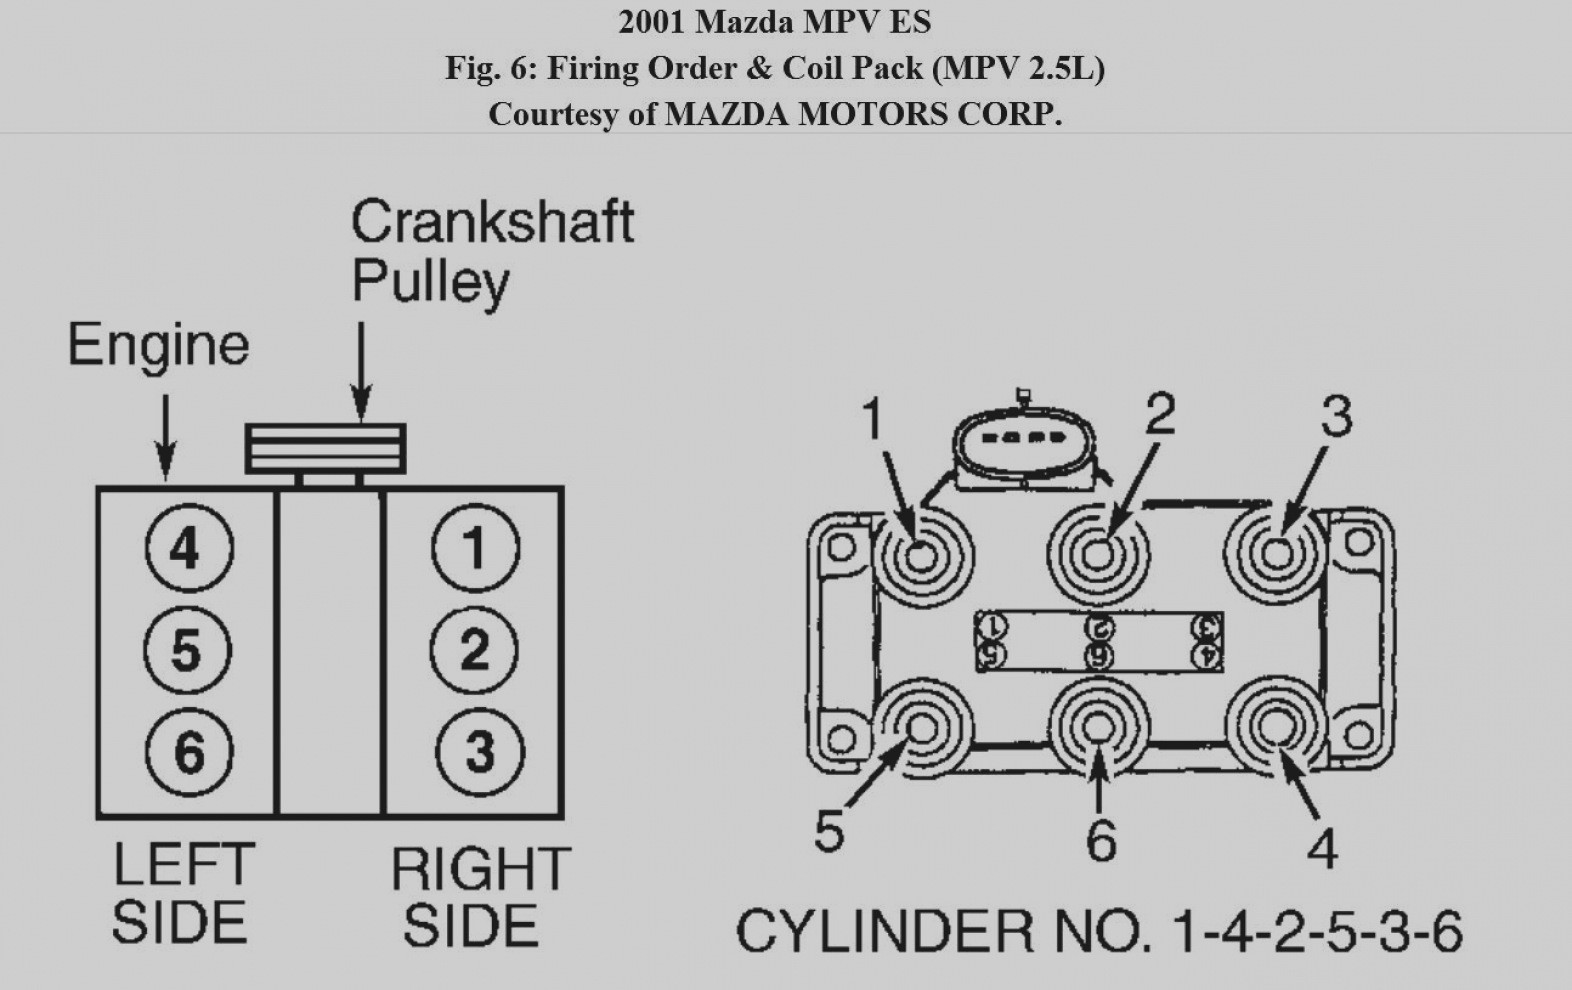 2008 Chevy Uplander Spark Plugs Free Download Wiring Diagram Coil Search For Diagrams U2022